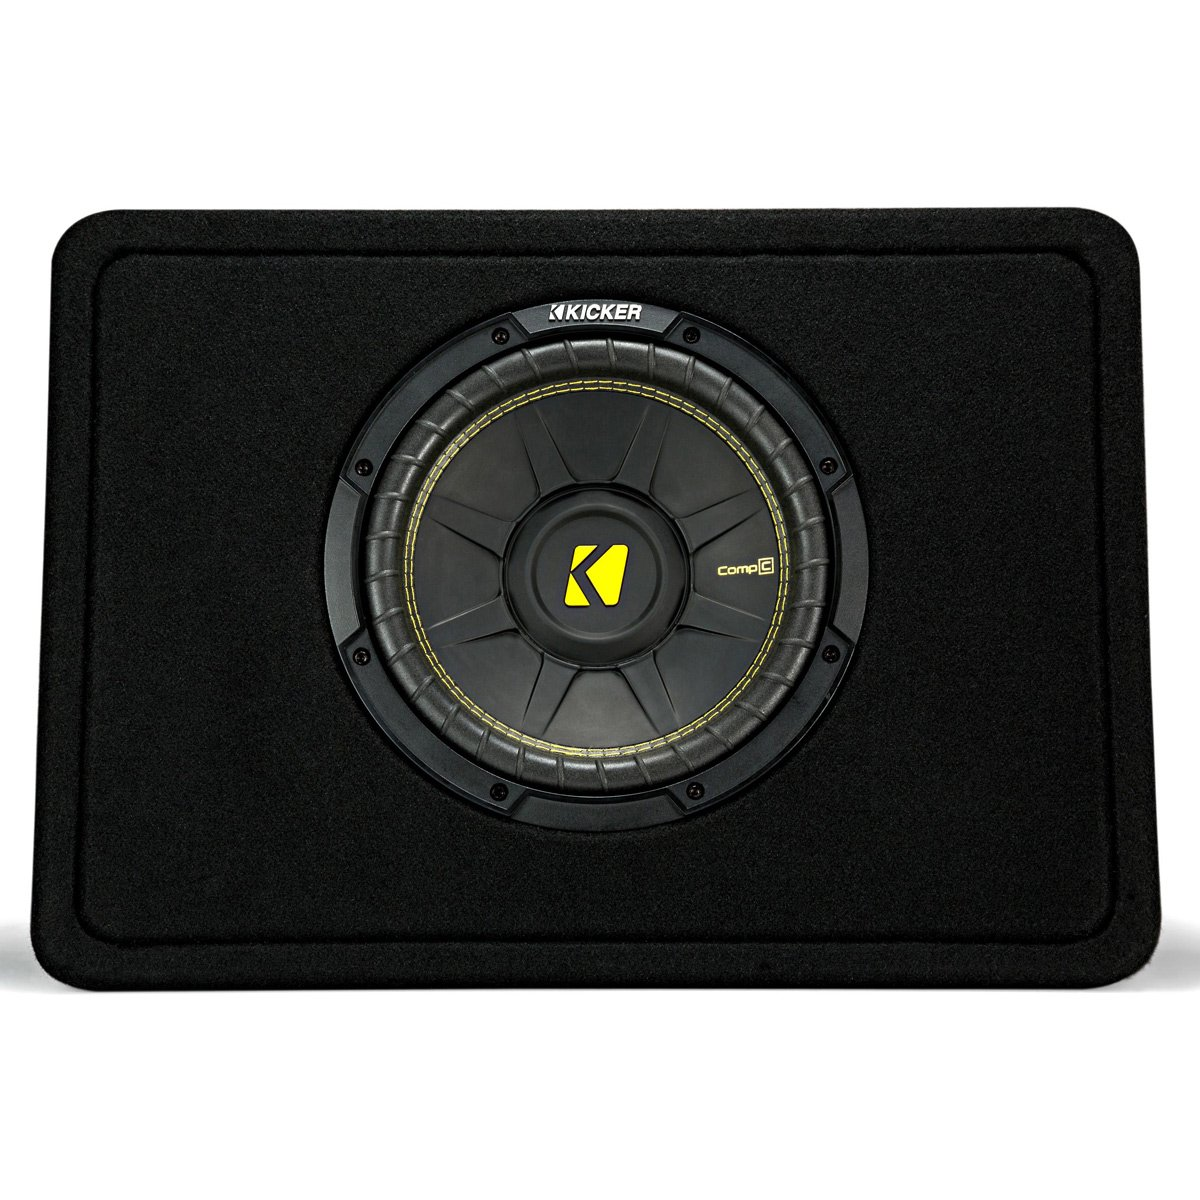 Kicker 10'' 600 Watt 4 Ohm Vented Thin Profile Subwoofer Enclosure | 44TCWC104